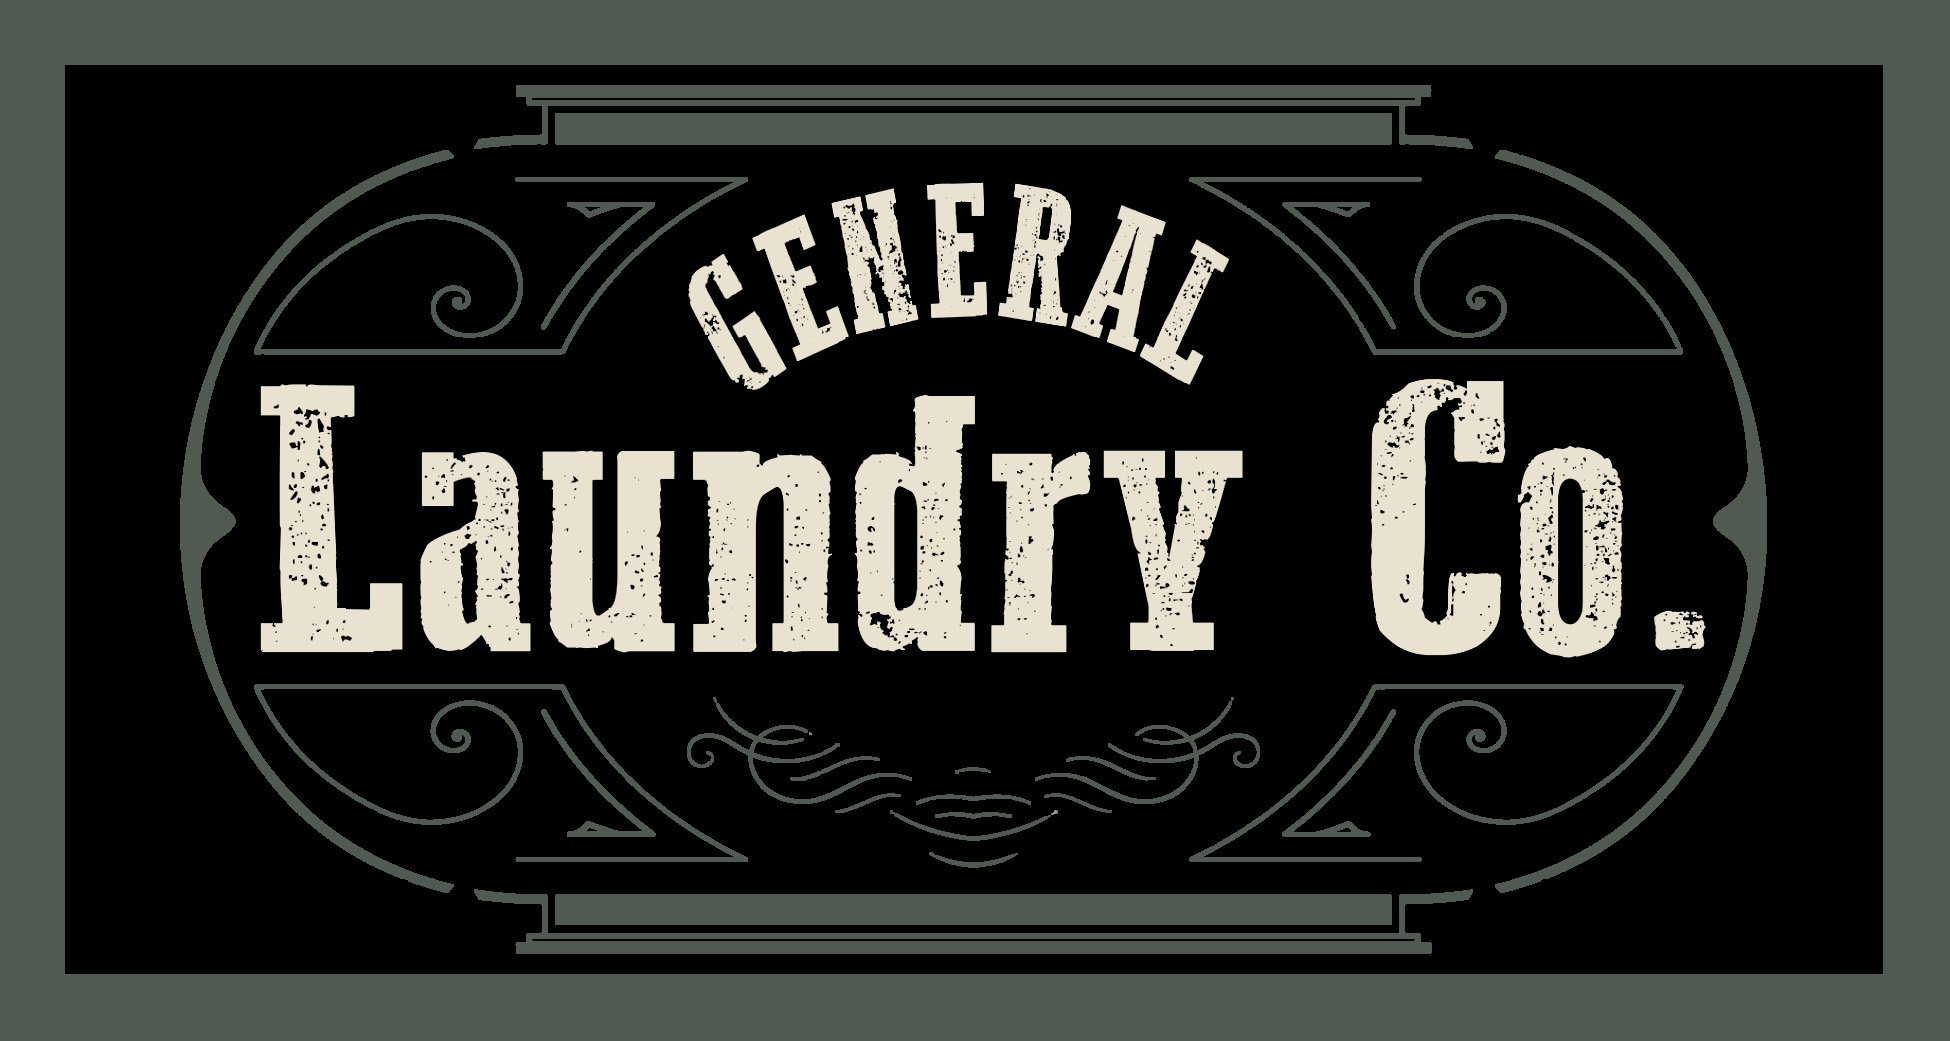 General Laundry Co.